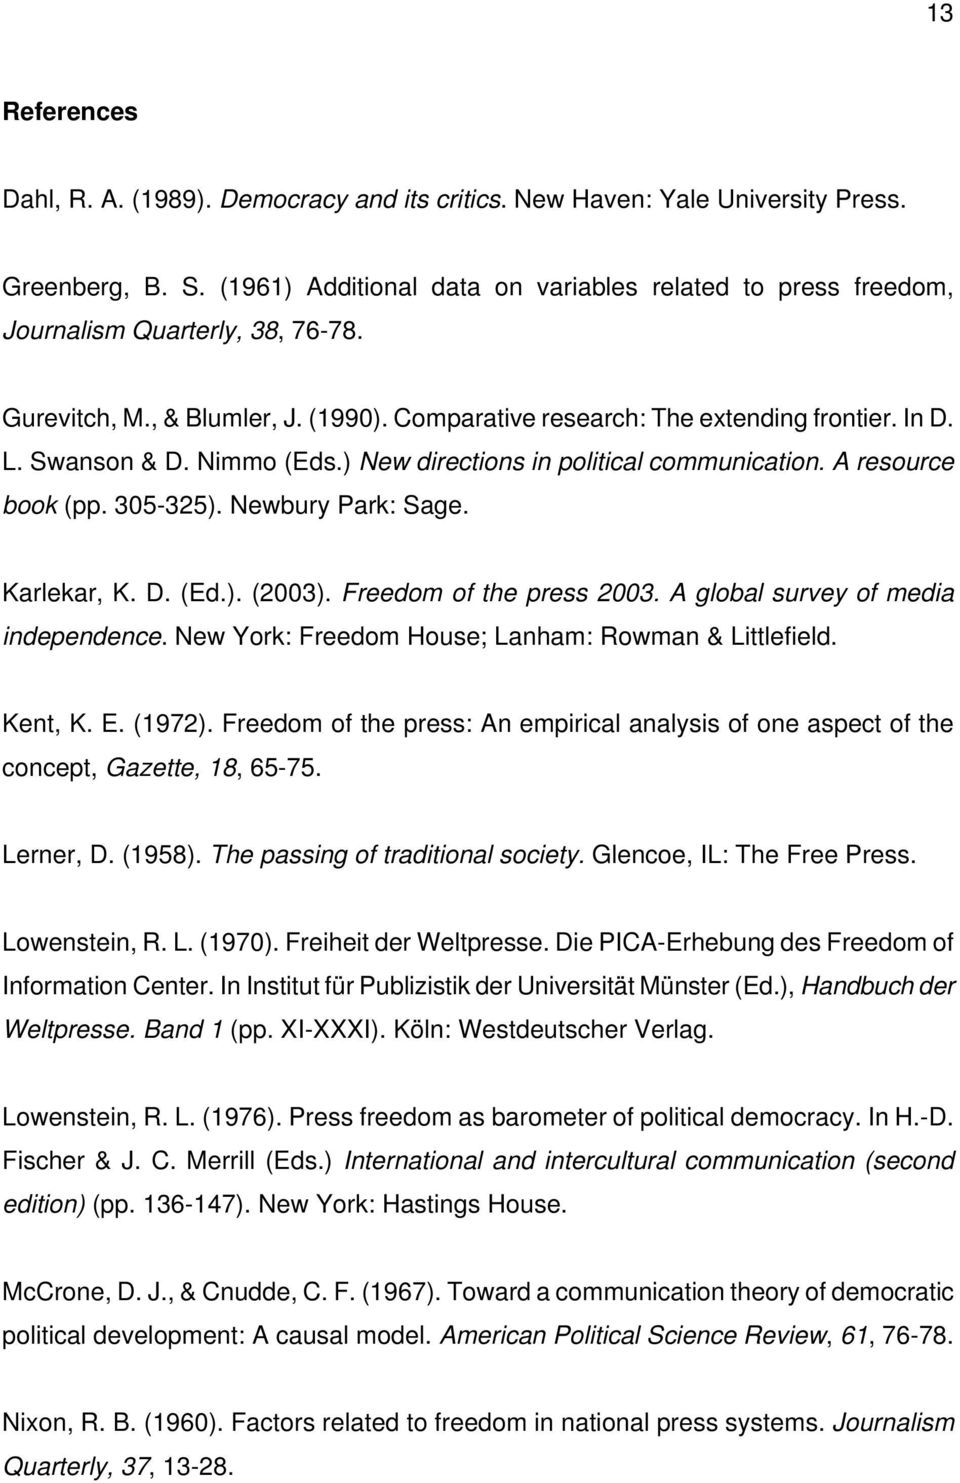 Nimmo (Eds.) New directions in political communication. A resource book (pp. 30-32). Newbury Park: Sage. Karlekar, K. D. (Ed.). (2003). Freedom of the press 2003.